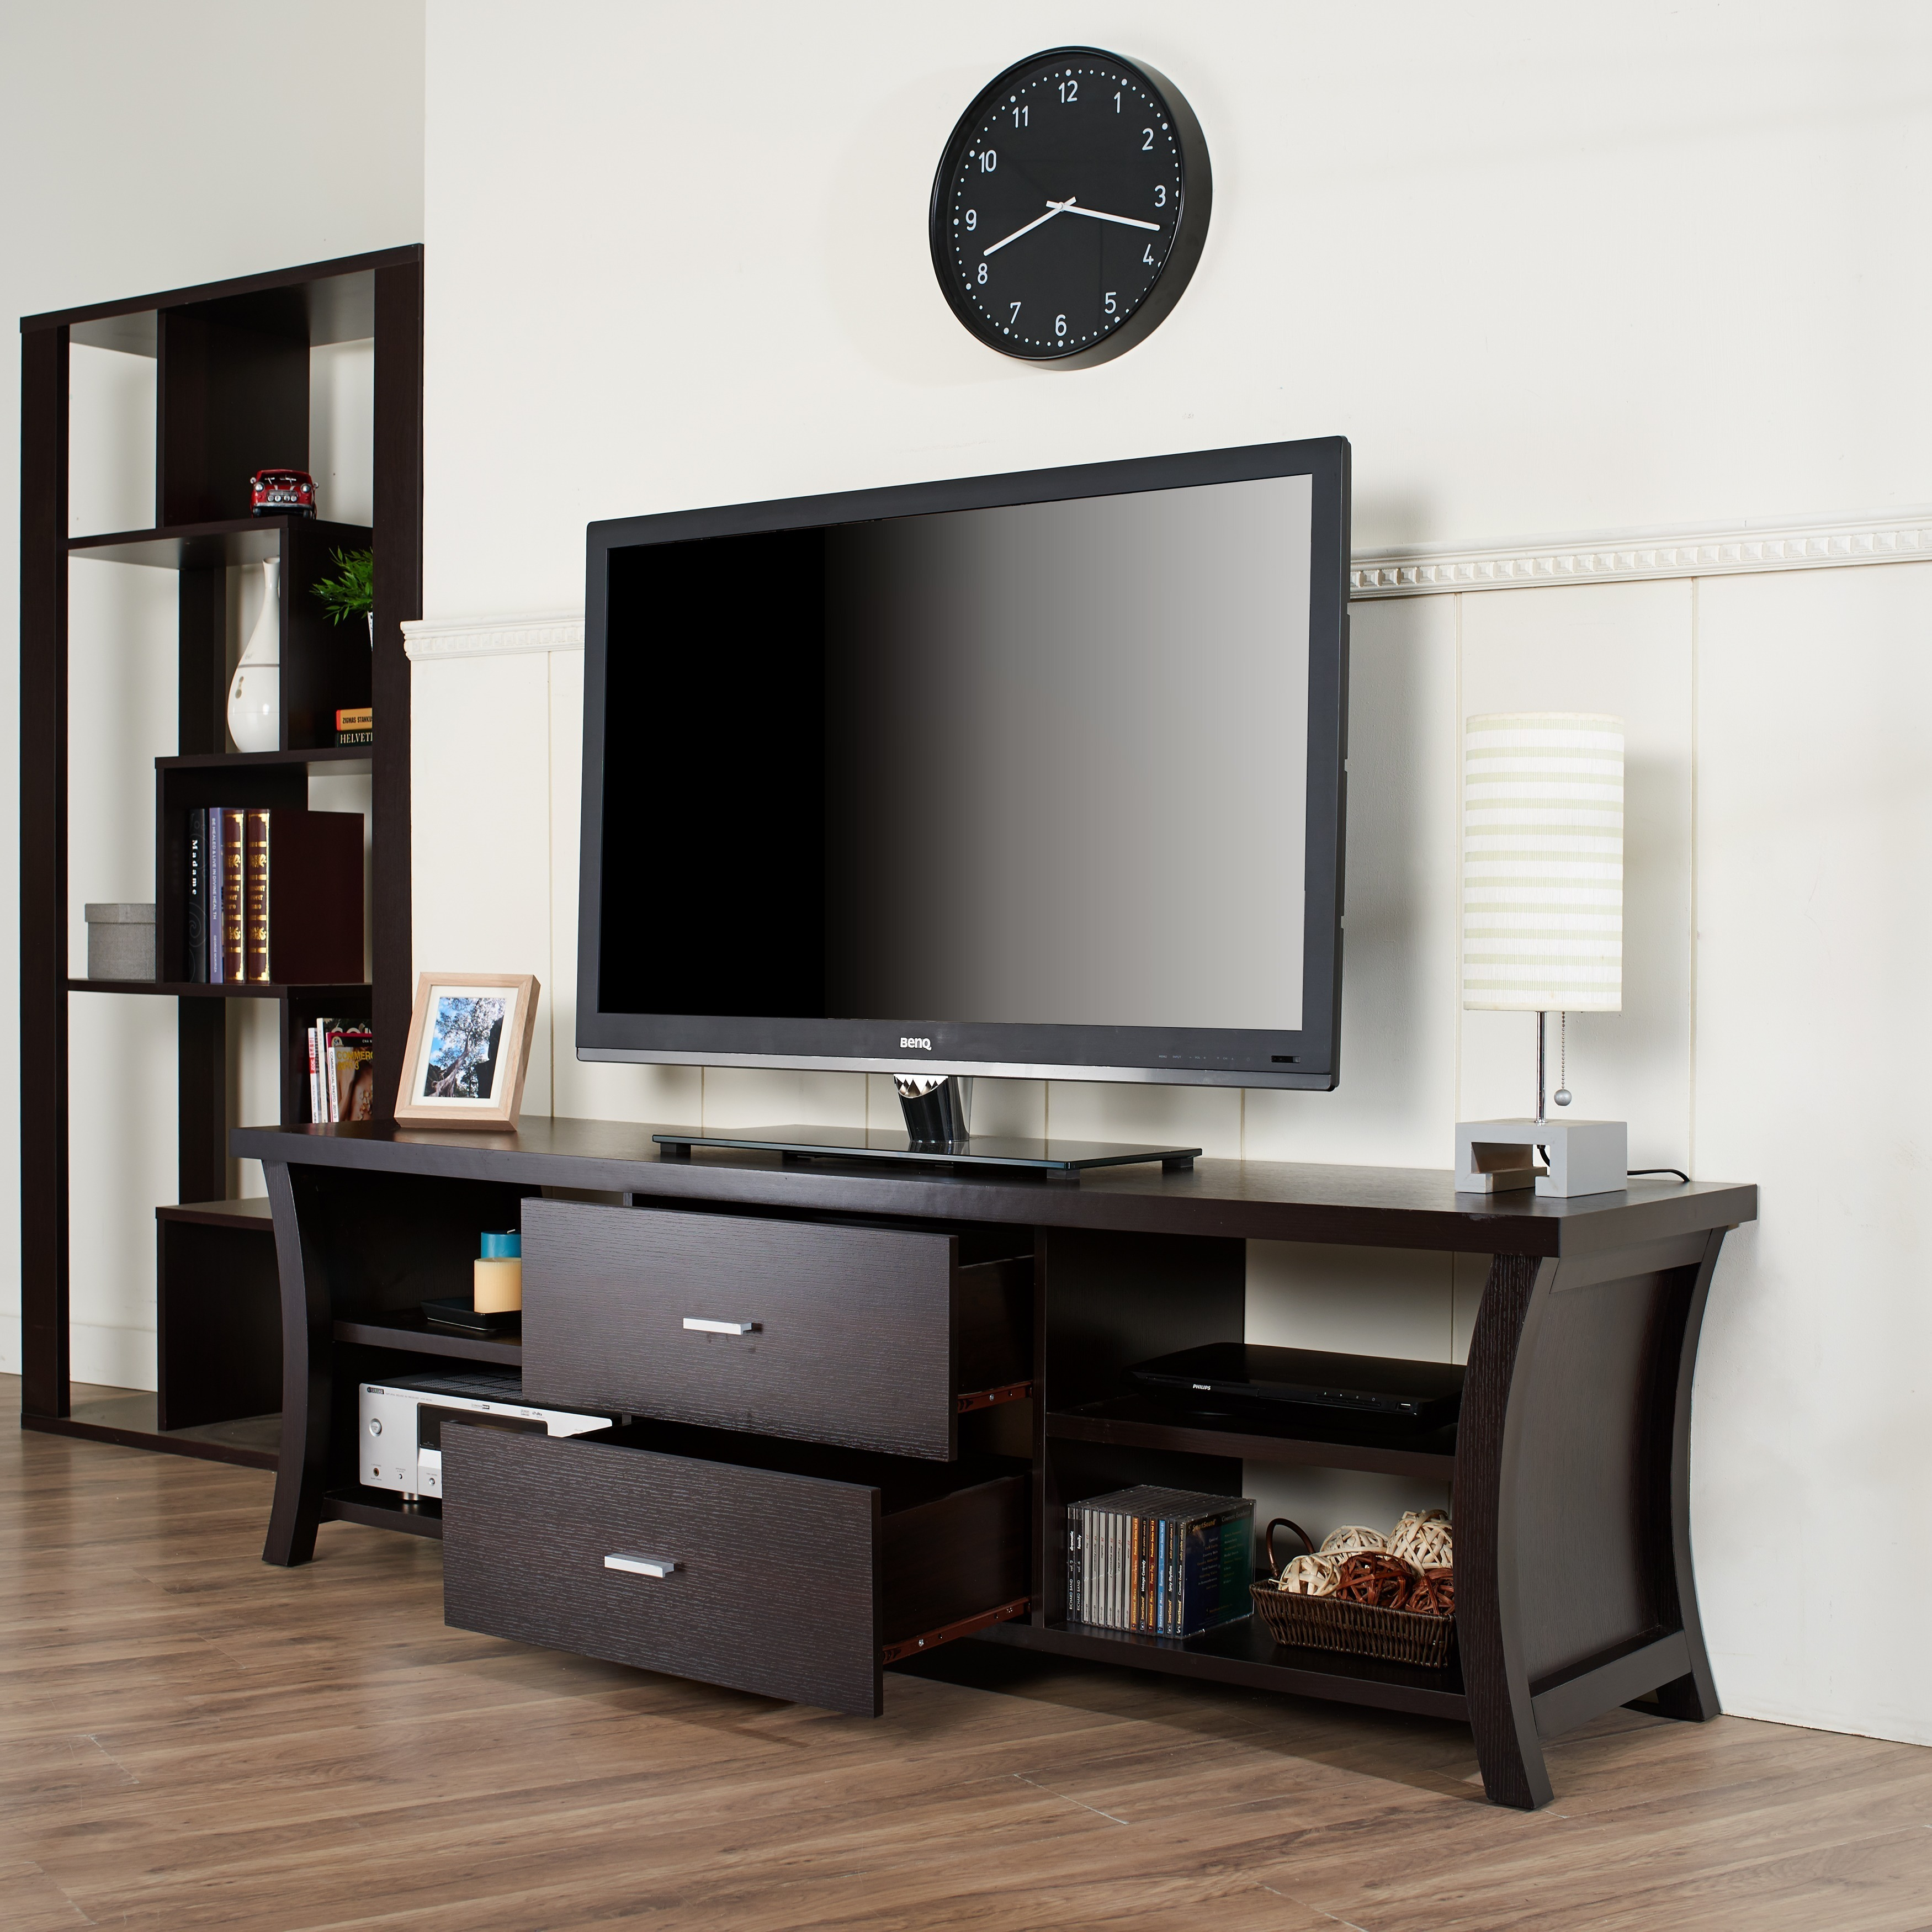 Shop Clay Alder Home Verrazano Modern 2 Drawer TV Stand With Open Shelving    Free Shipping On Orders Over $45   Overstock.com   8385957